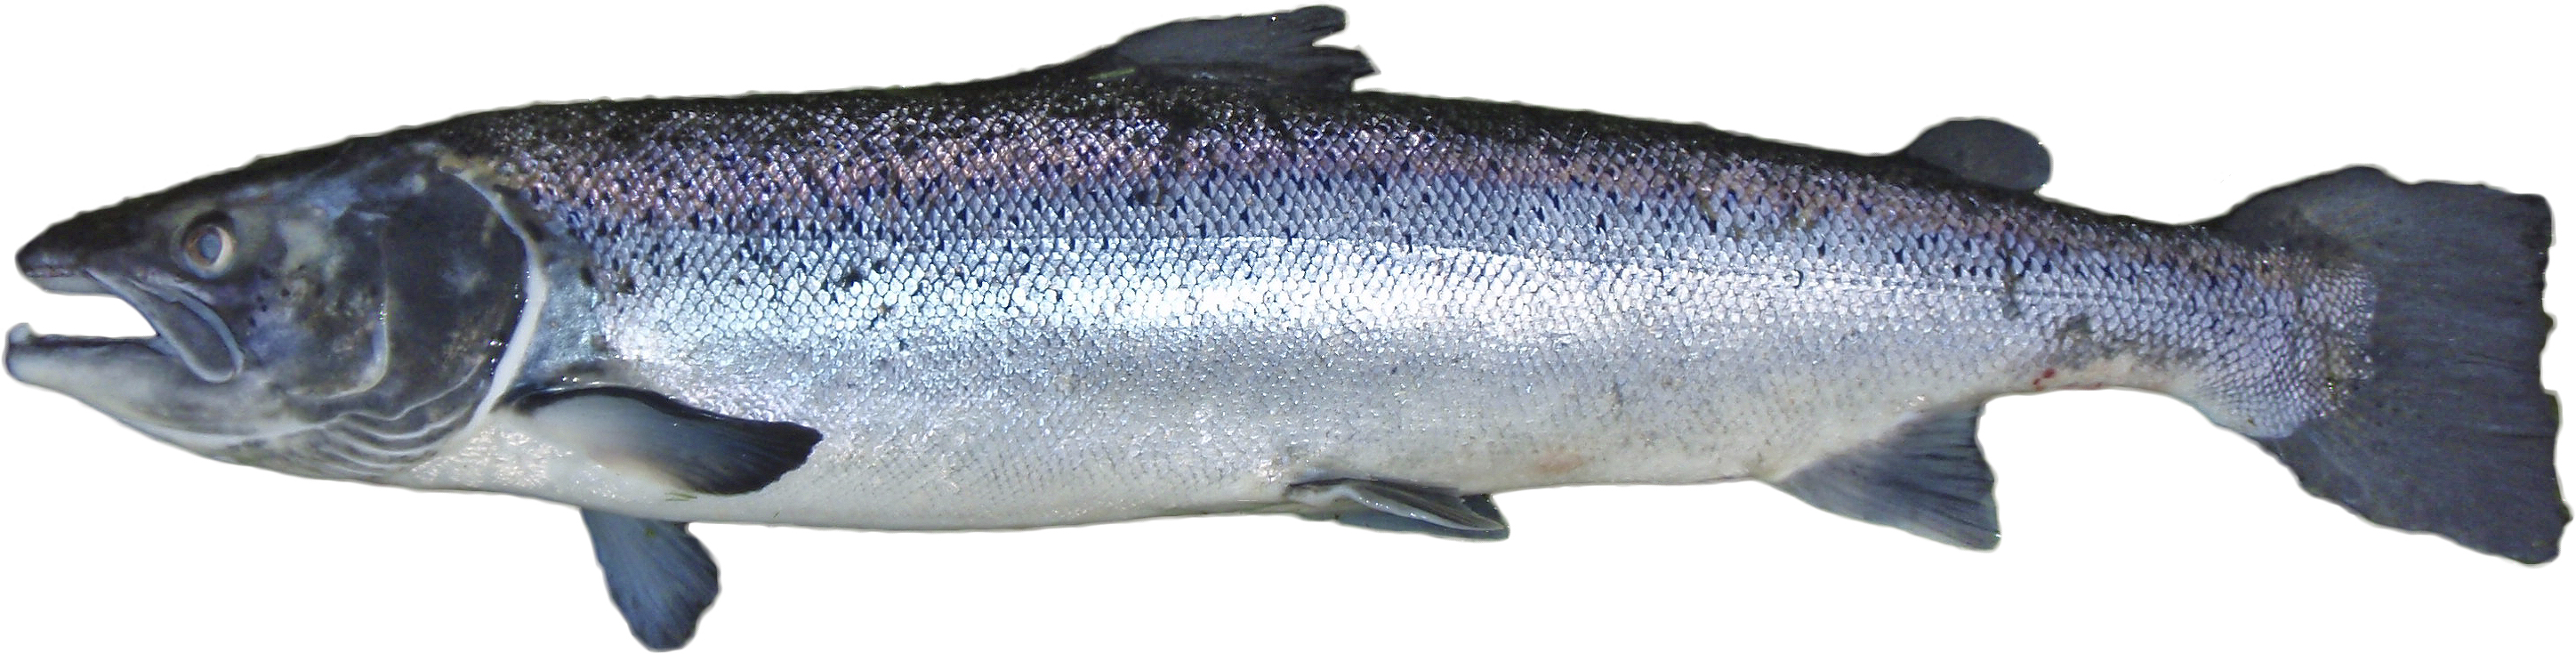 Png salmon fish transparent salmon fish png images pluspng for Salmon fish pictures